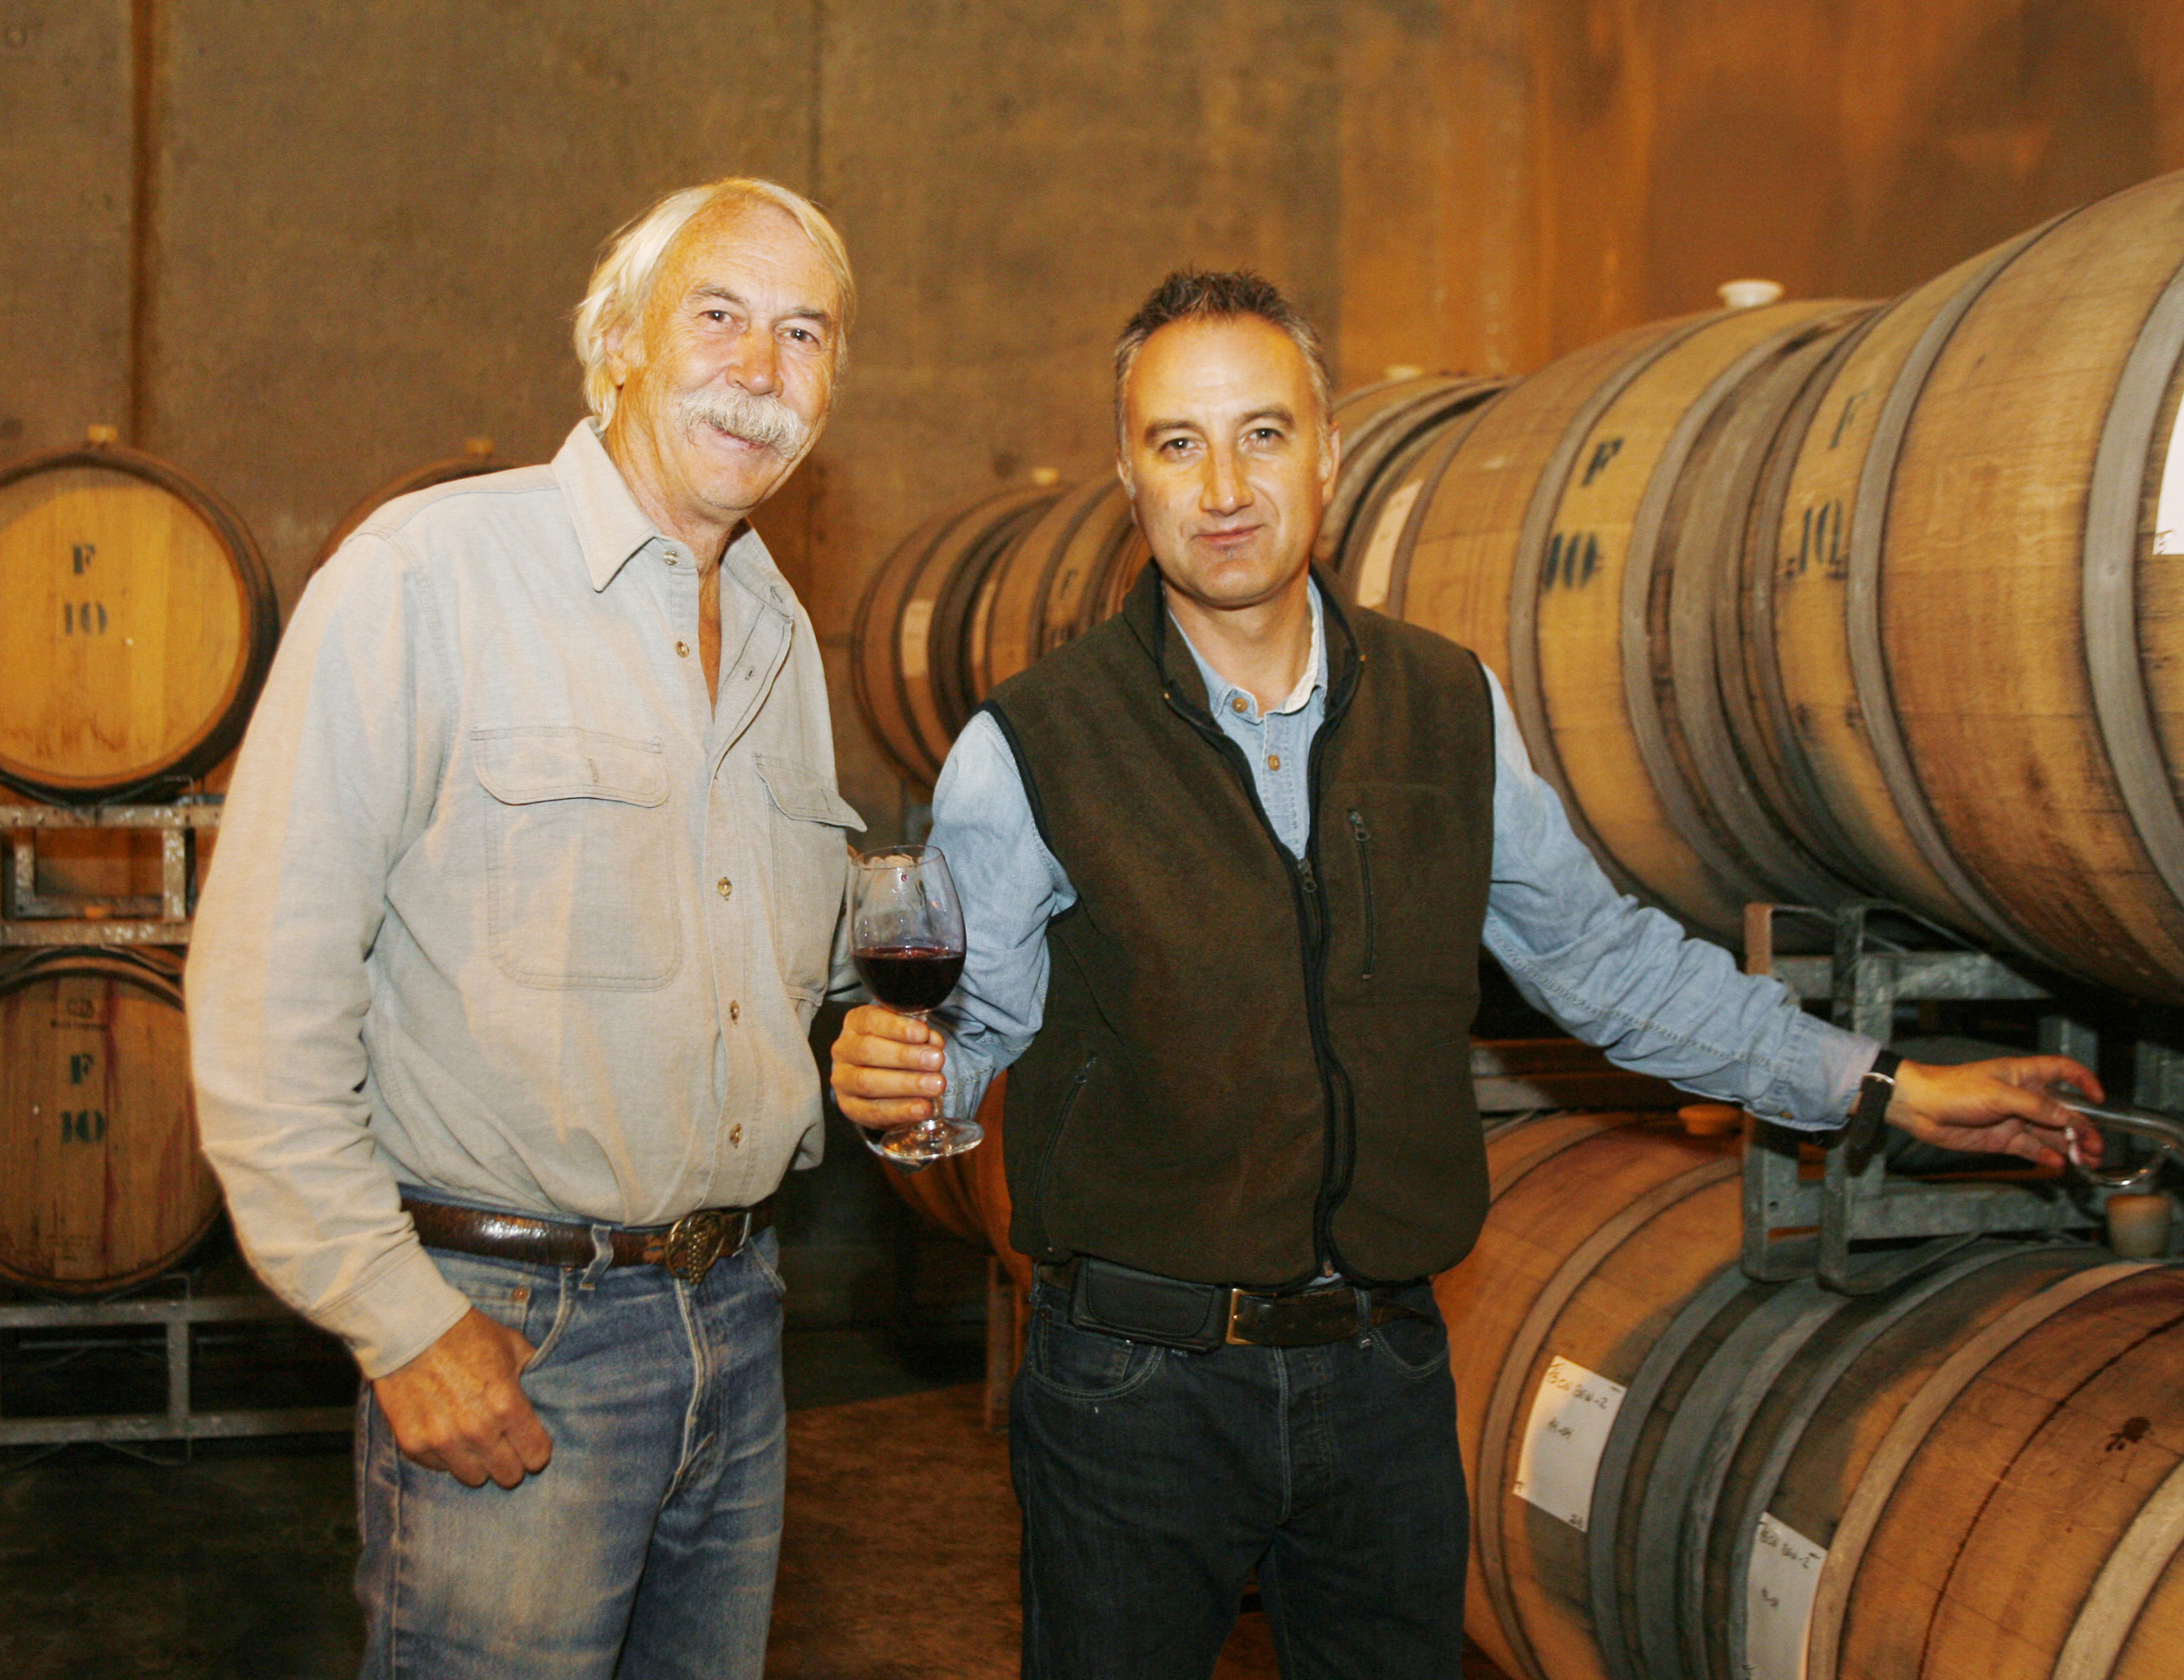 image of winemaster Randy Ullom and Winemaker Andrés Sánchez